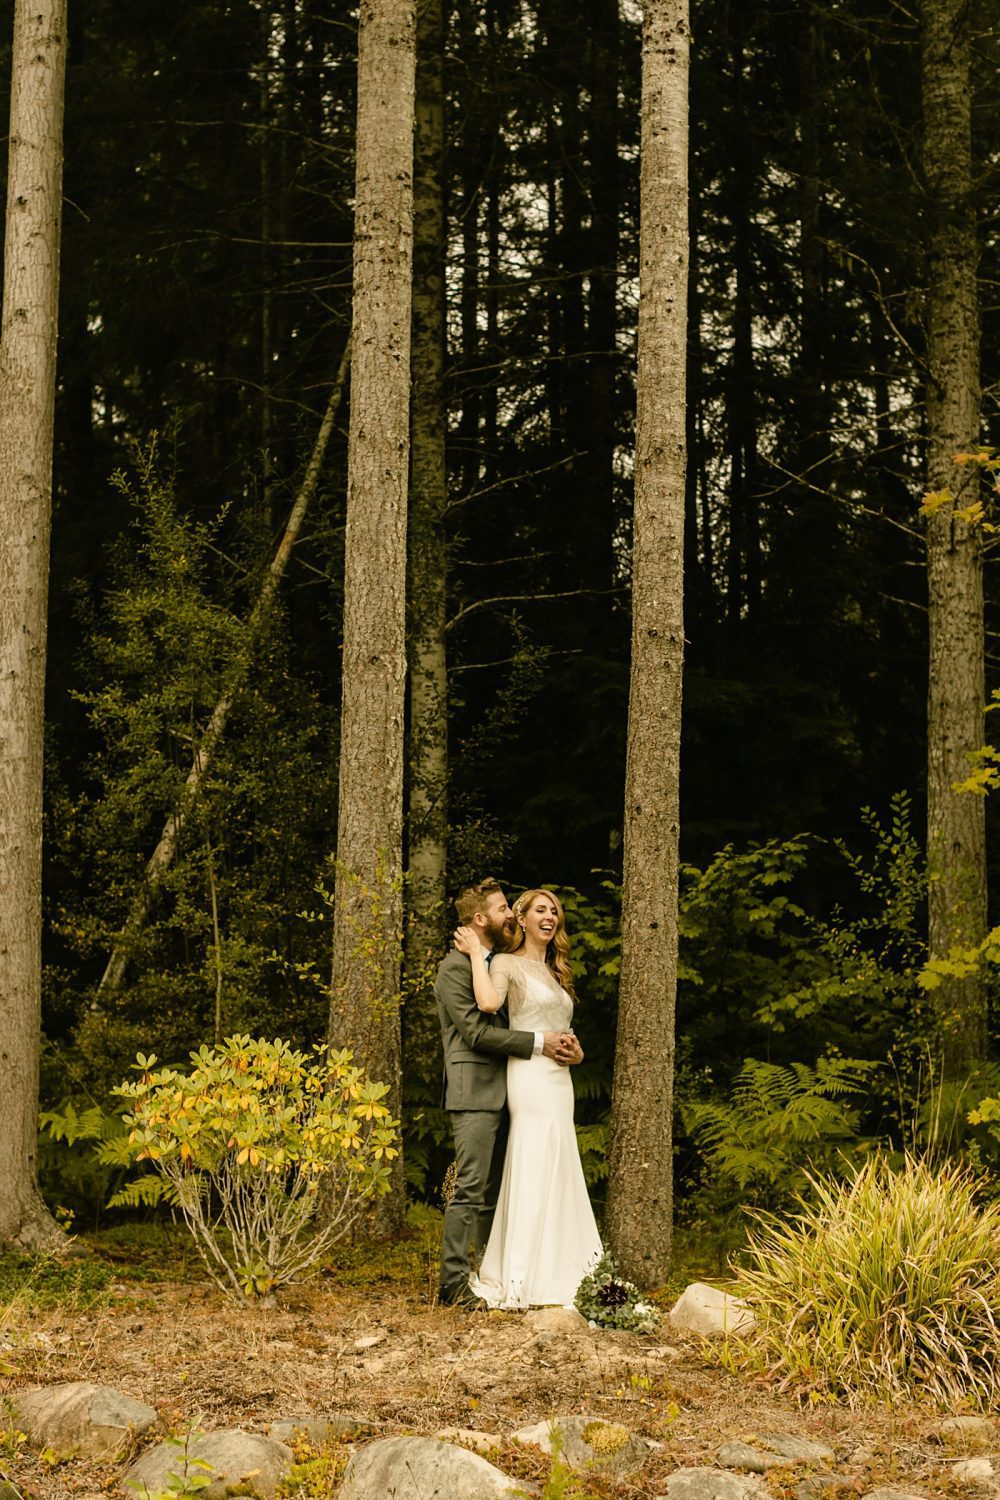 adventure elopement photographer based in seattle, WA